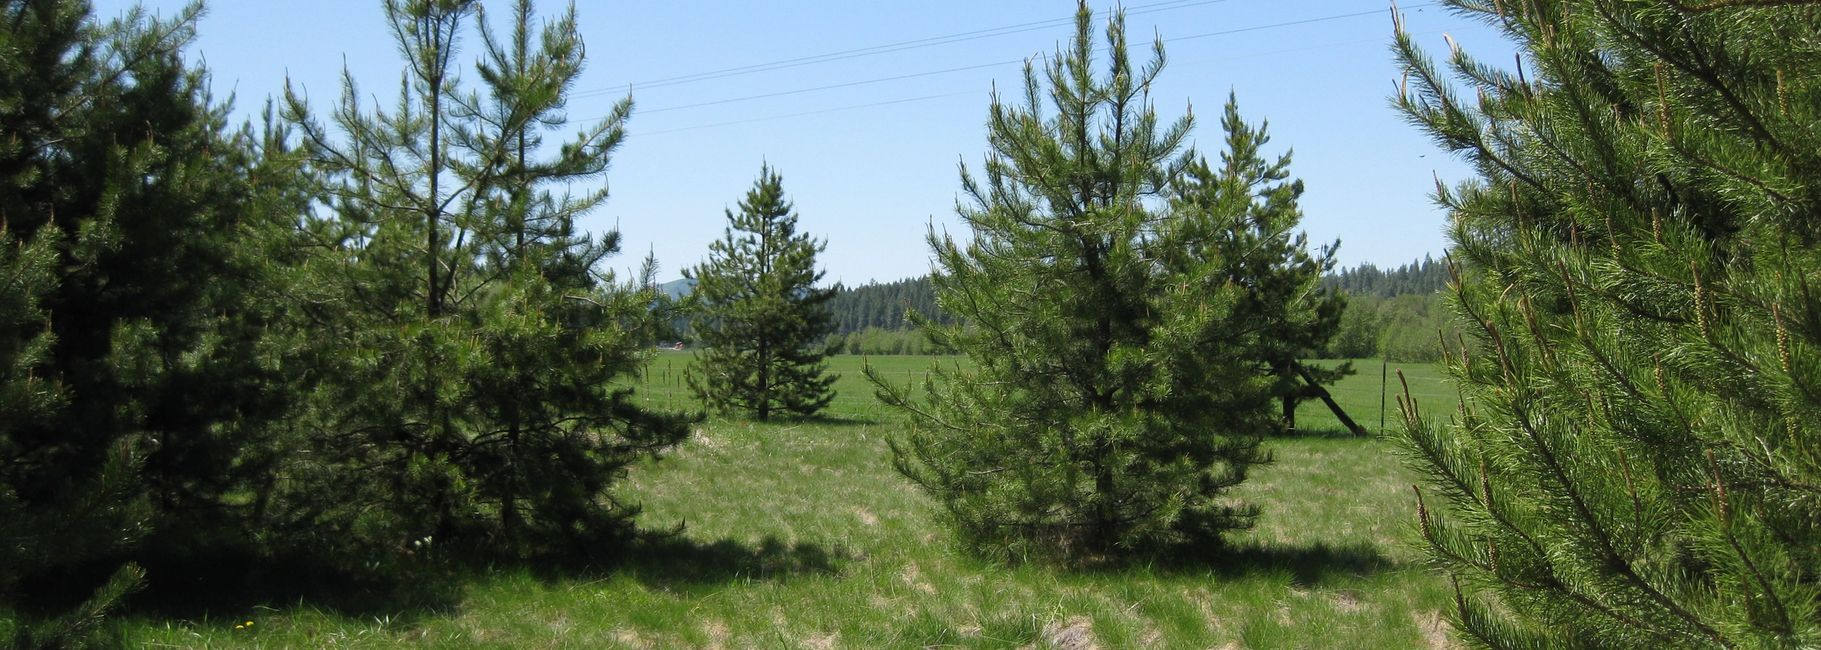 Land for sale in washington state. Treed land for sale. Meadow land for sale.